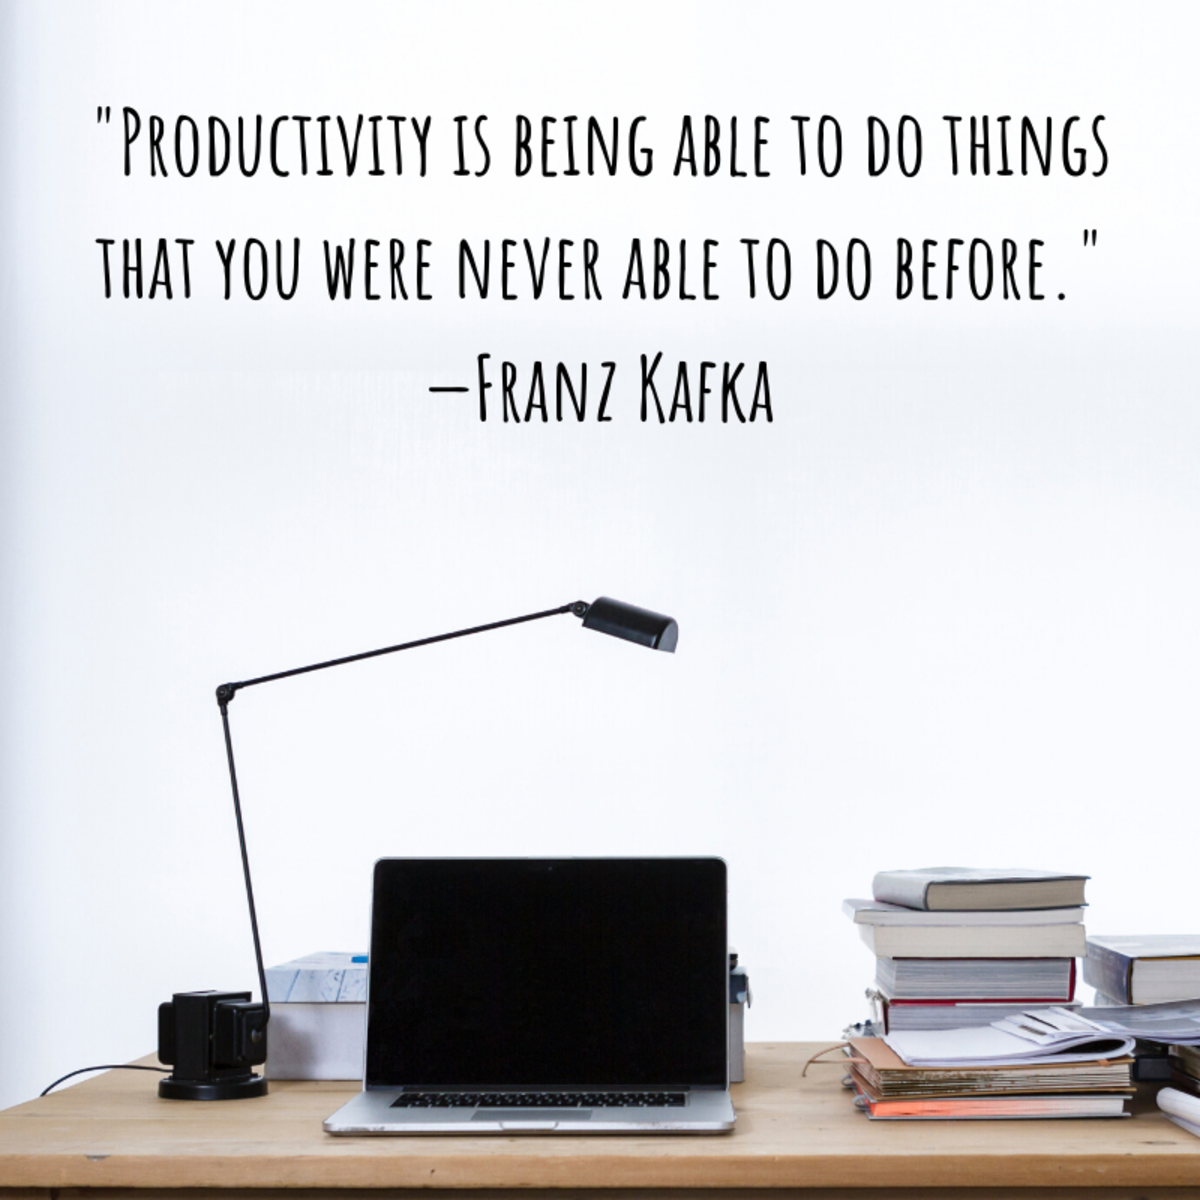 """Productivity is being able to do things that you were never able to do before."" – Franz Kafka"